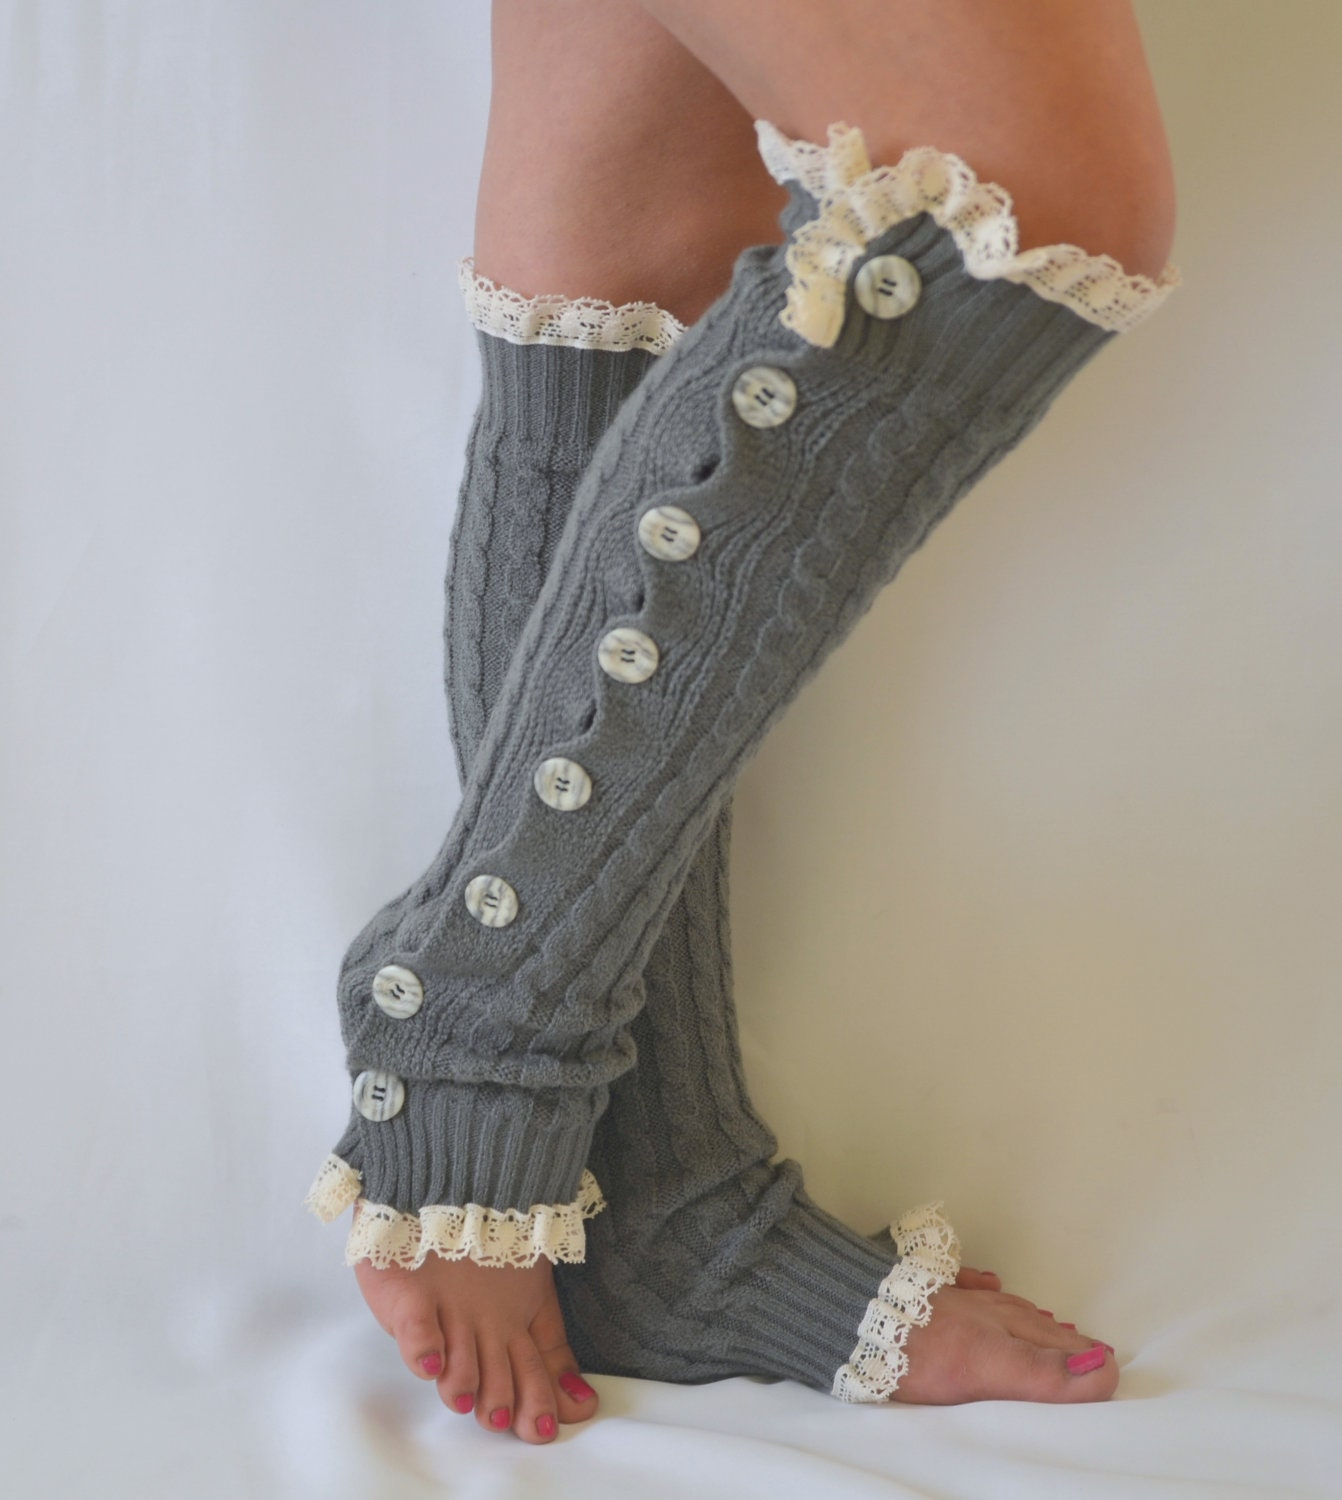 Knitting Pattern For Rain Boot Socks : Leg Warmers-Gray cable knit slouchy button lace knit lace leg